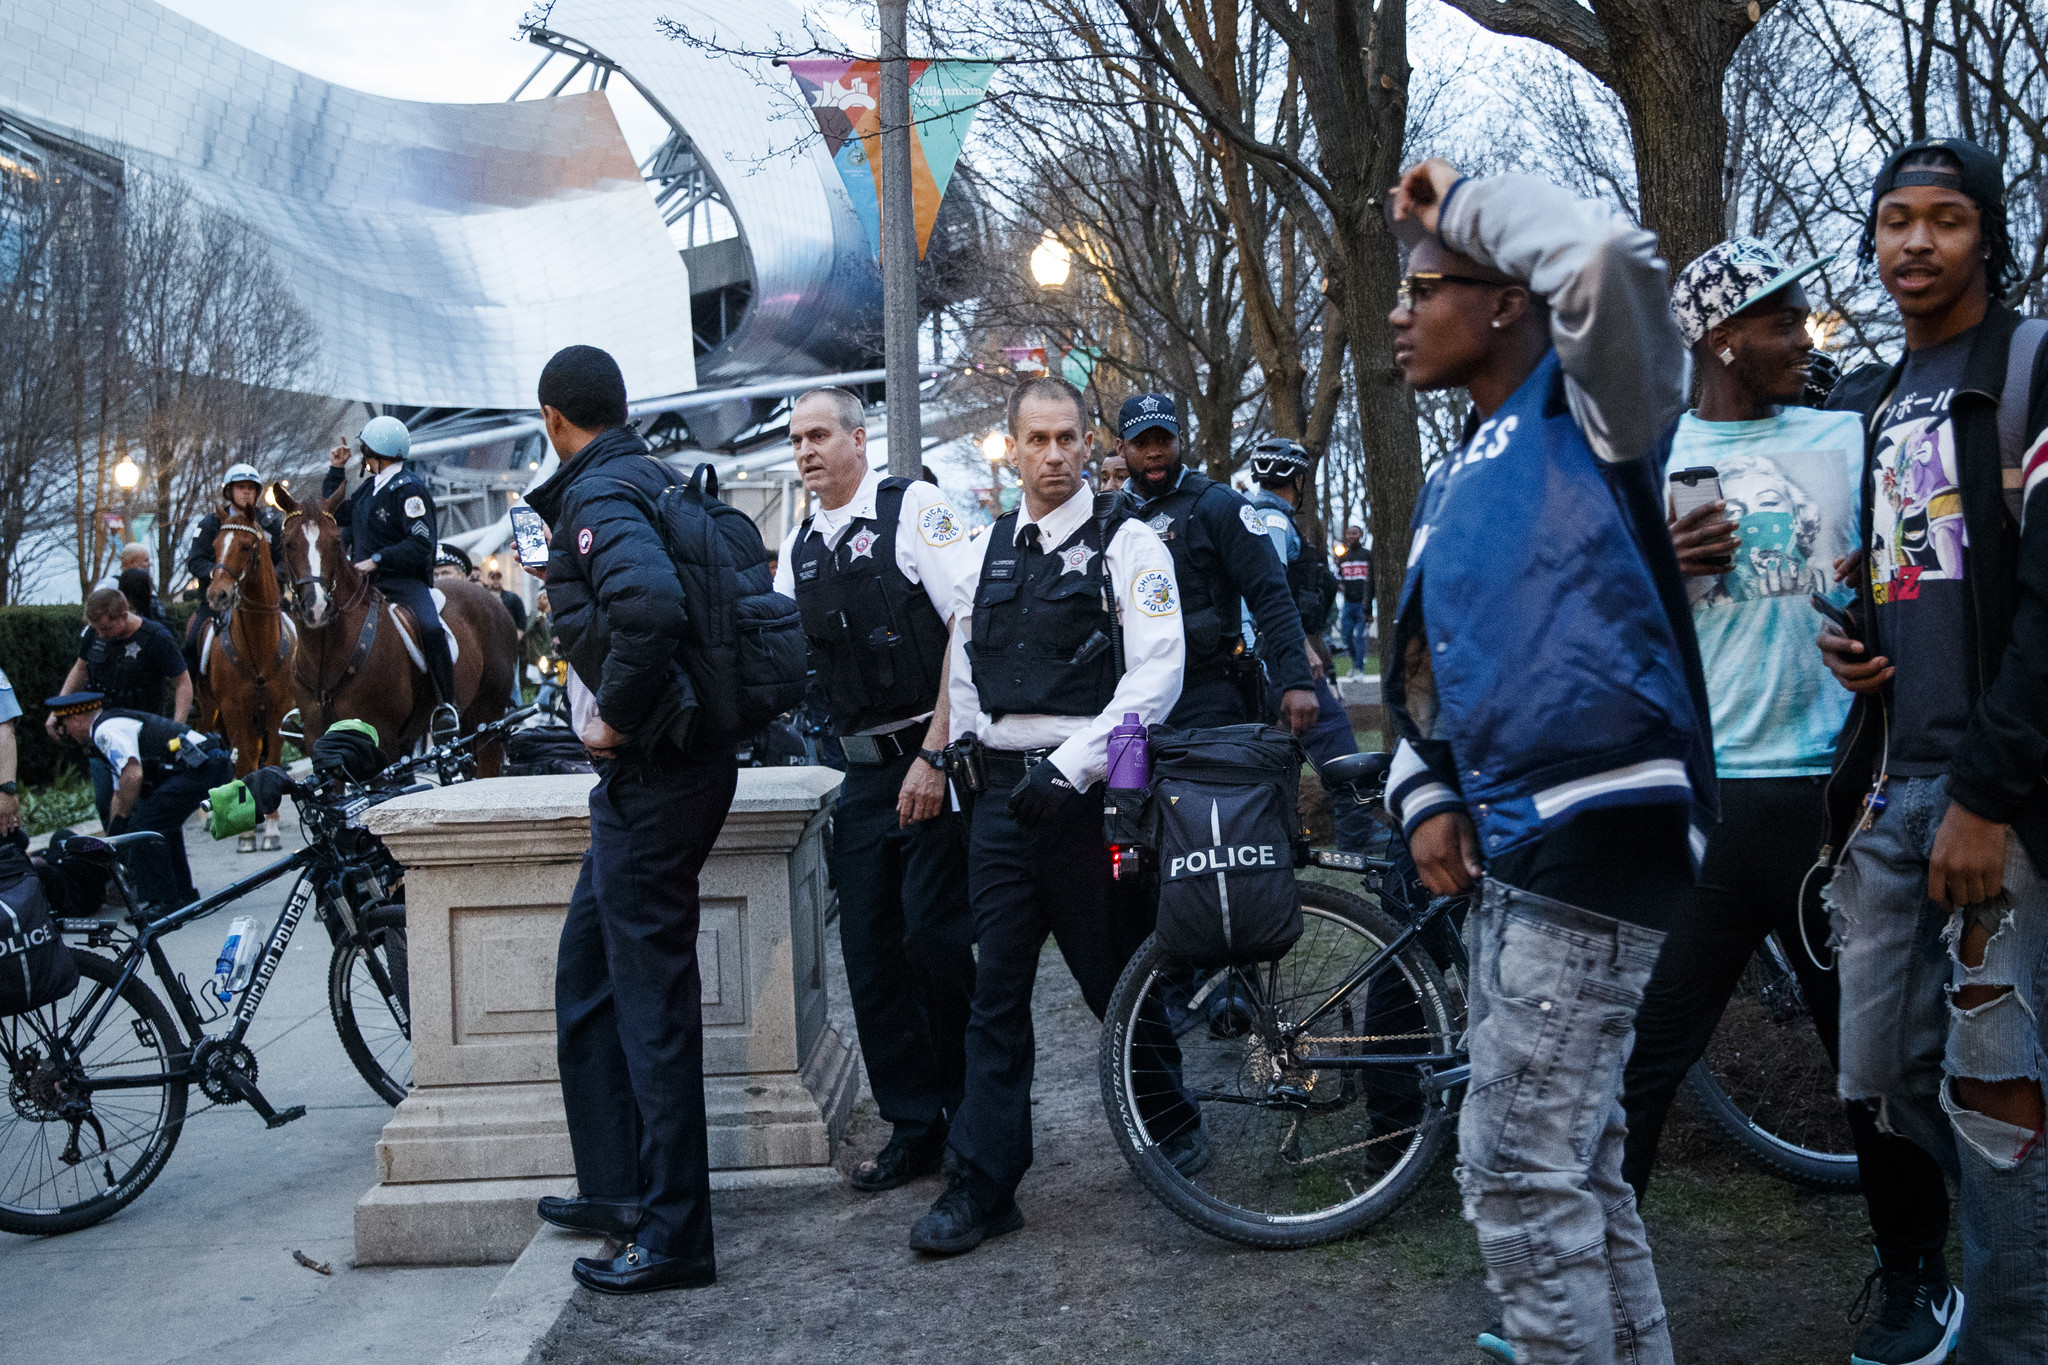 Nearly 30 arrested when fights break out as hundreds of young people descend on downtown Chicago